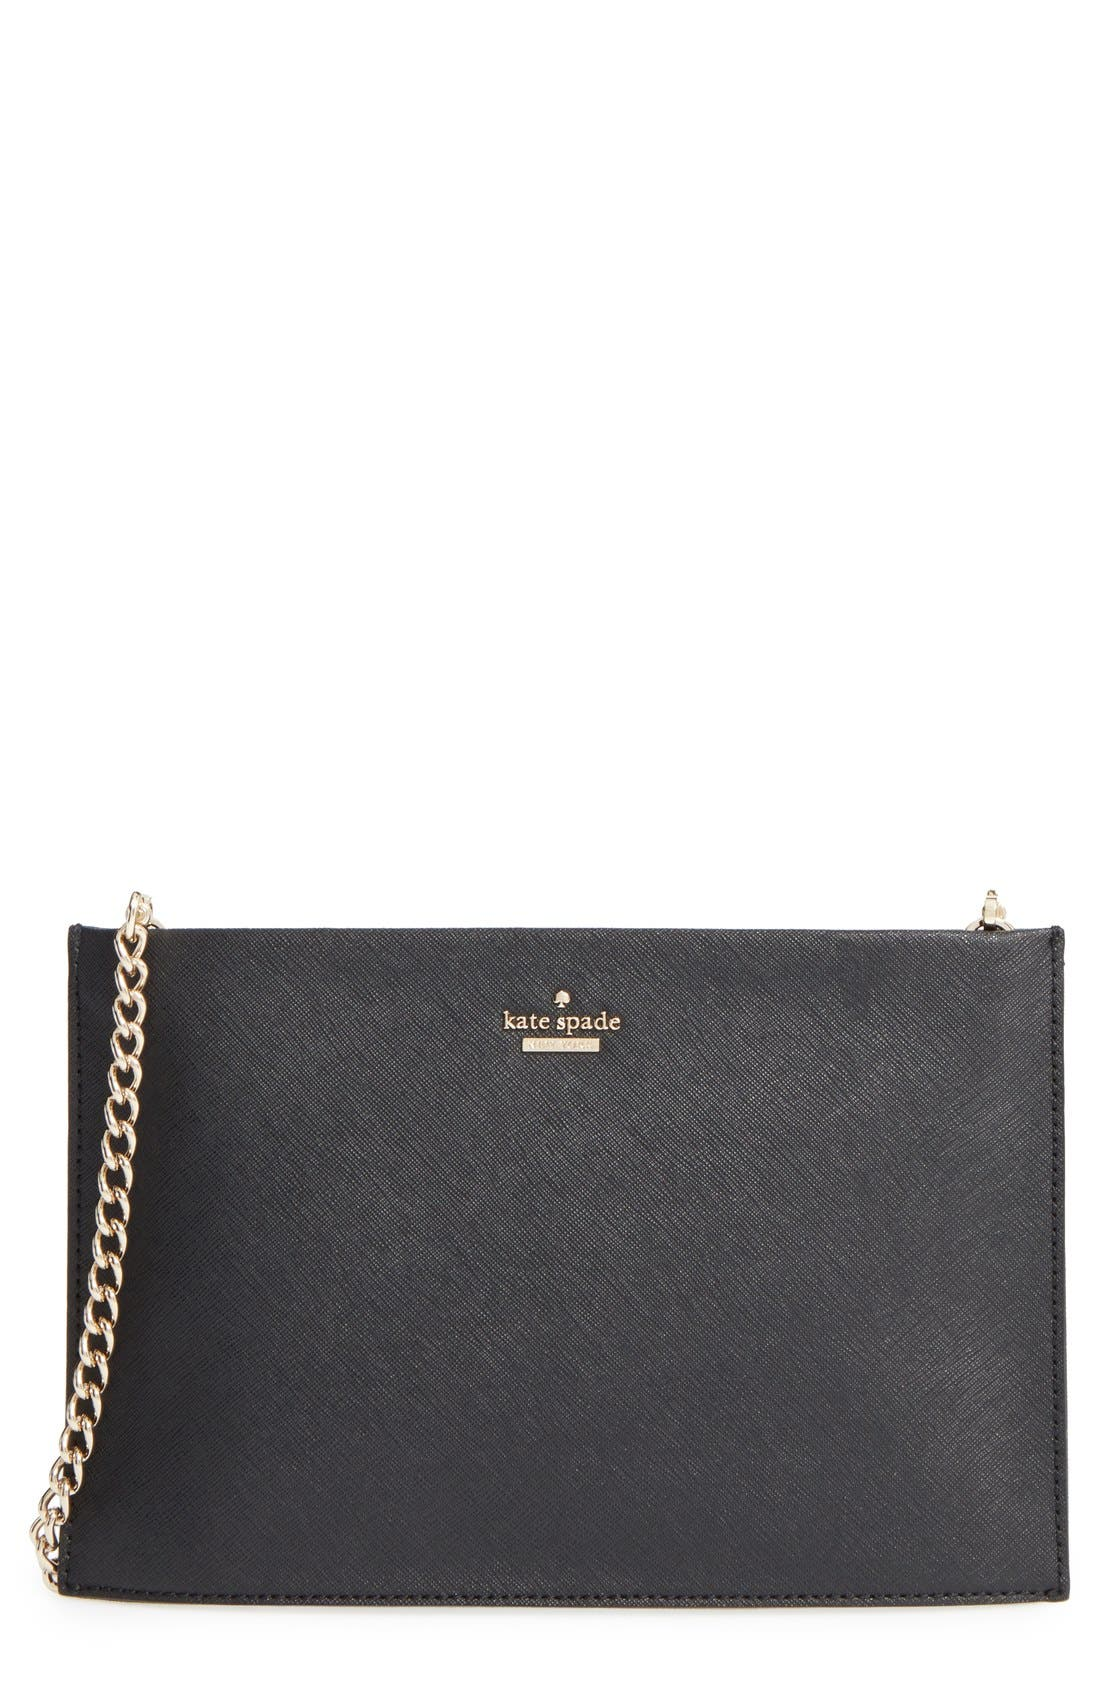 kate spade new york cameron street - sima leather shoulder bag